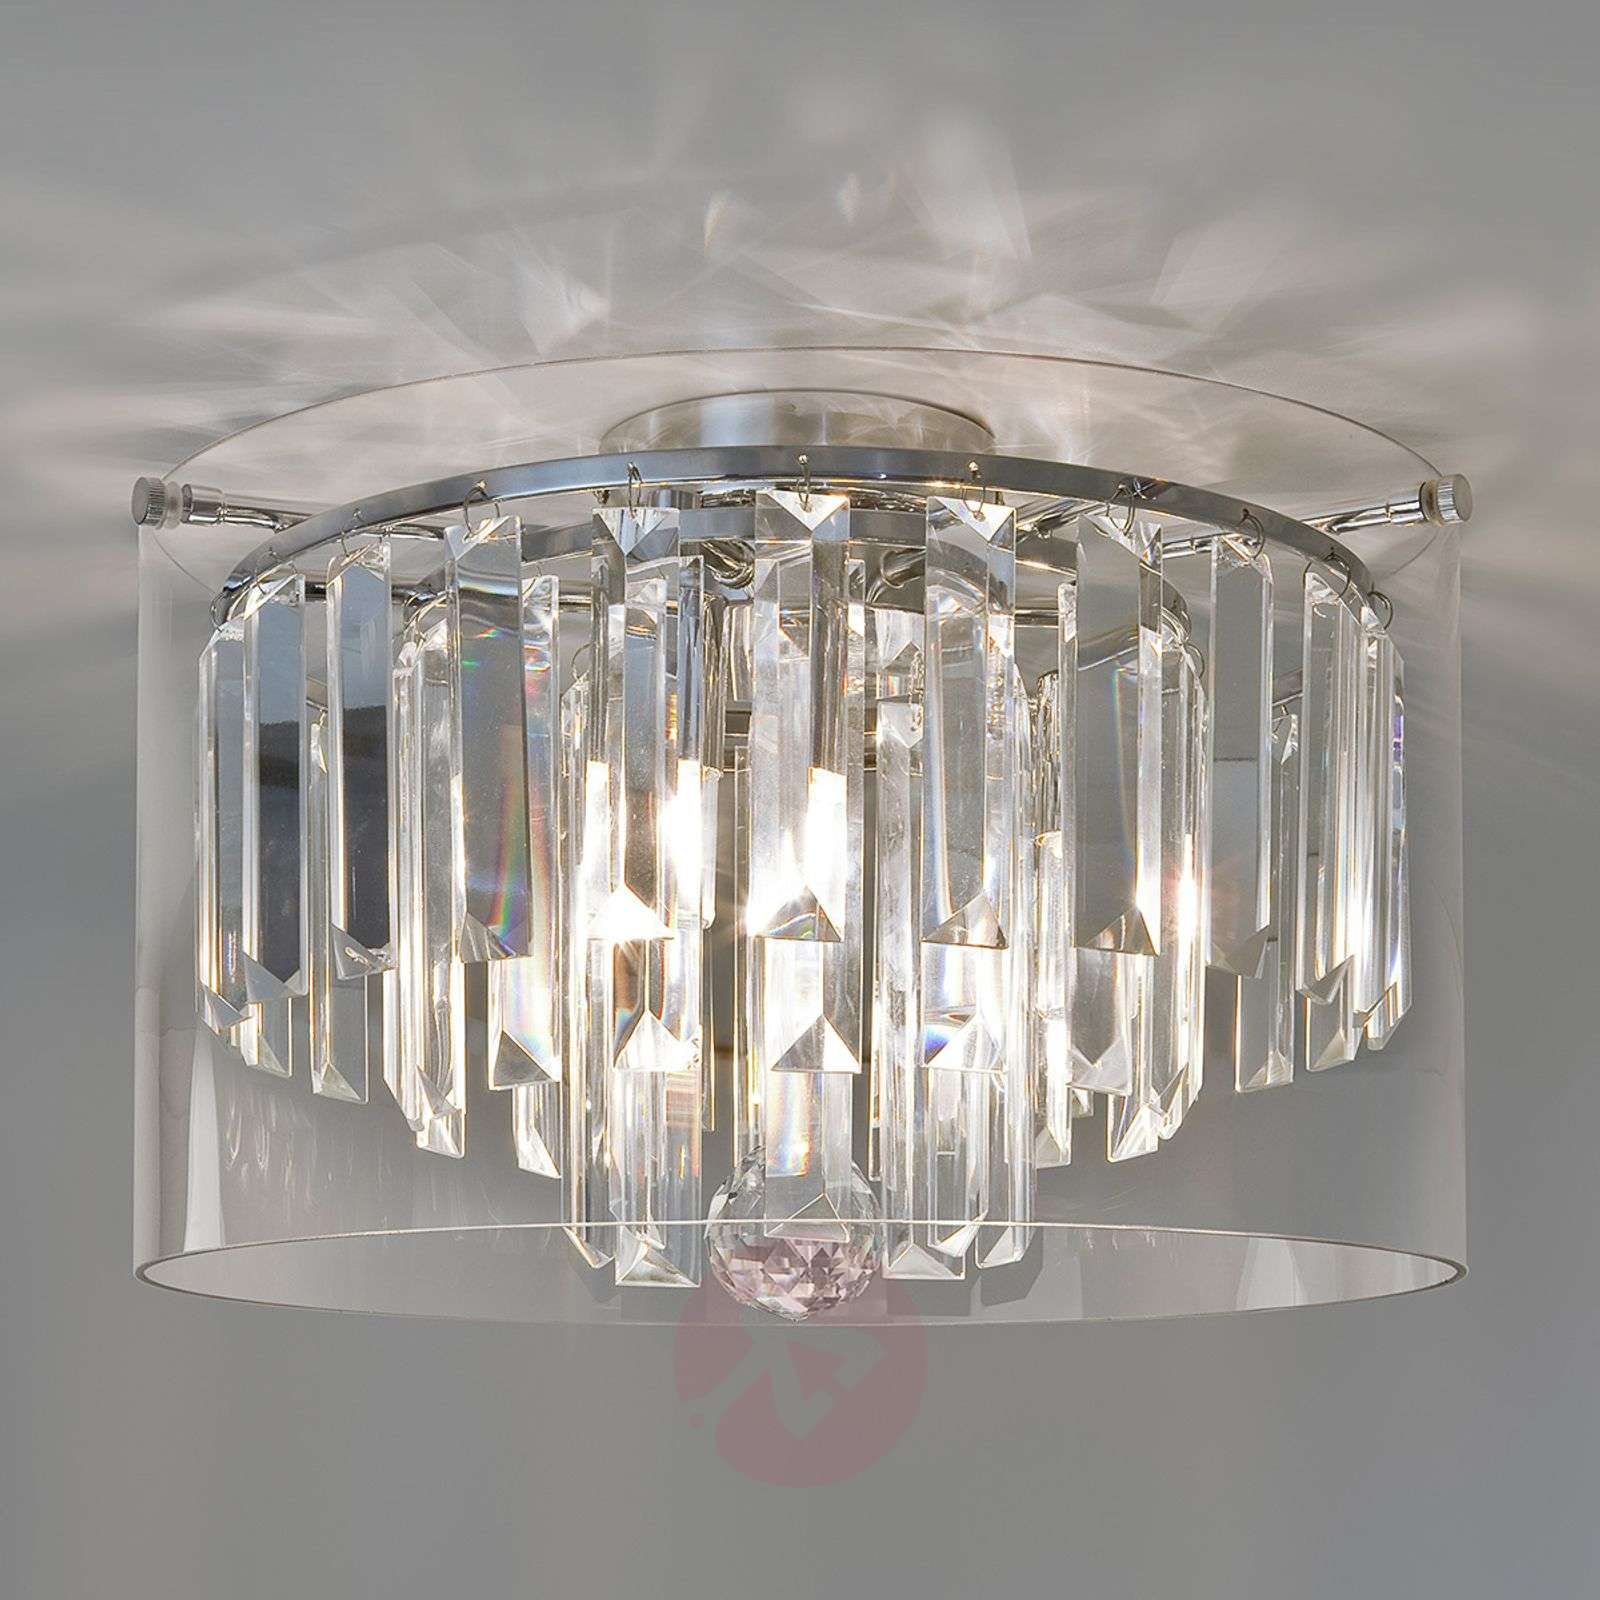 Asini Bathroom Ceiling Light Exclusive-1020464-02